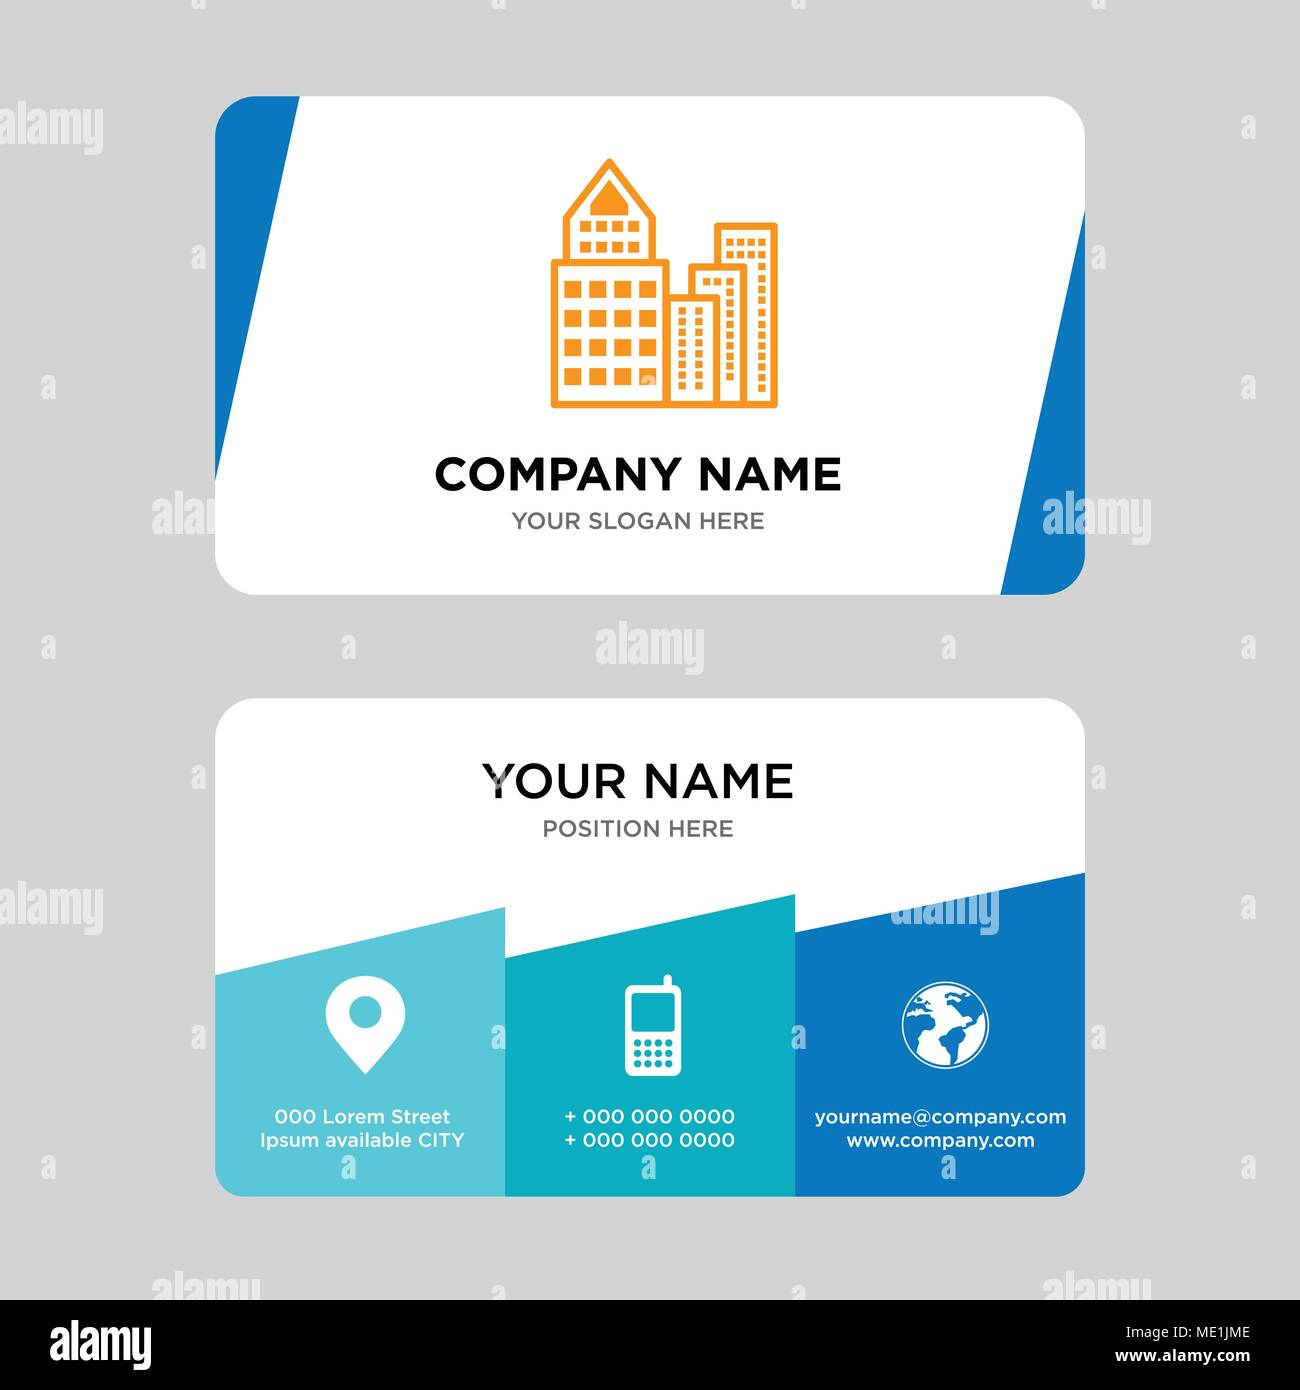 Building Business Card Design Template Visiting For Your Company